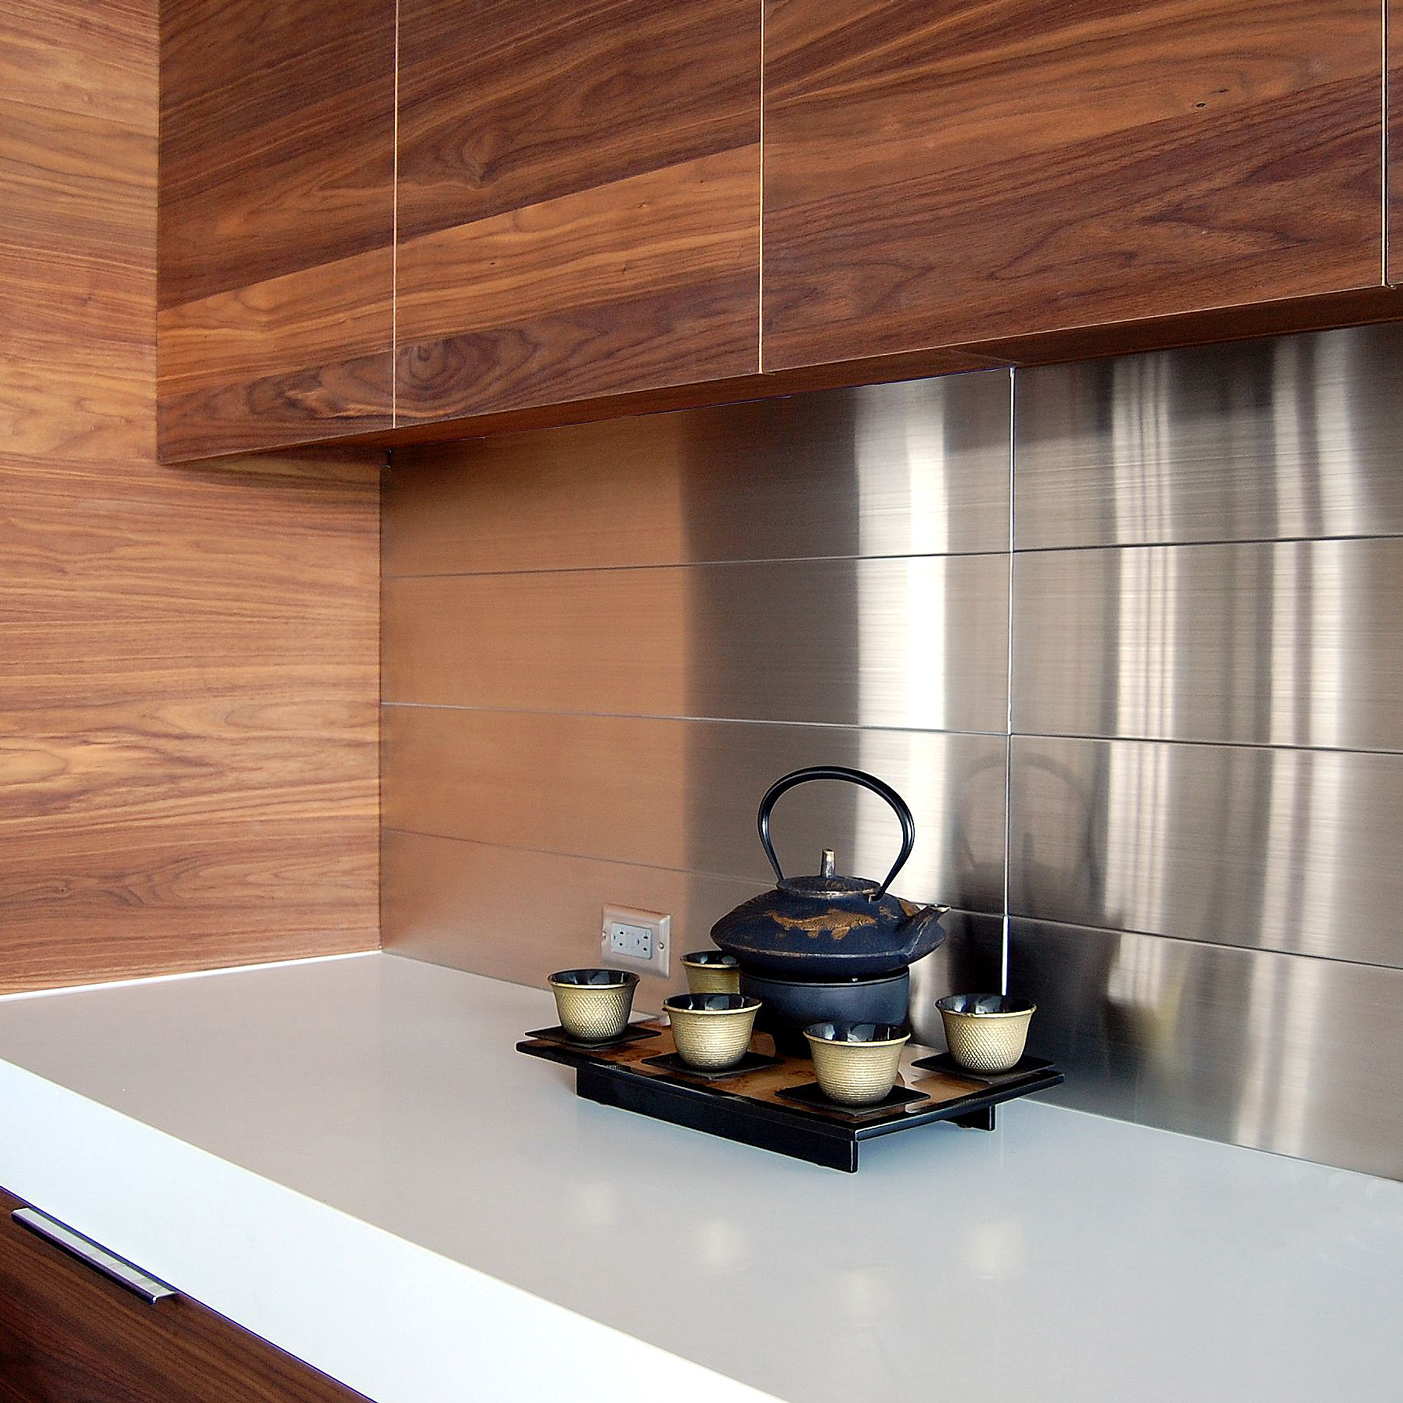 A stainless steel backsplash in a kitchen w/ wood countertop